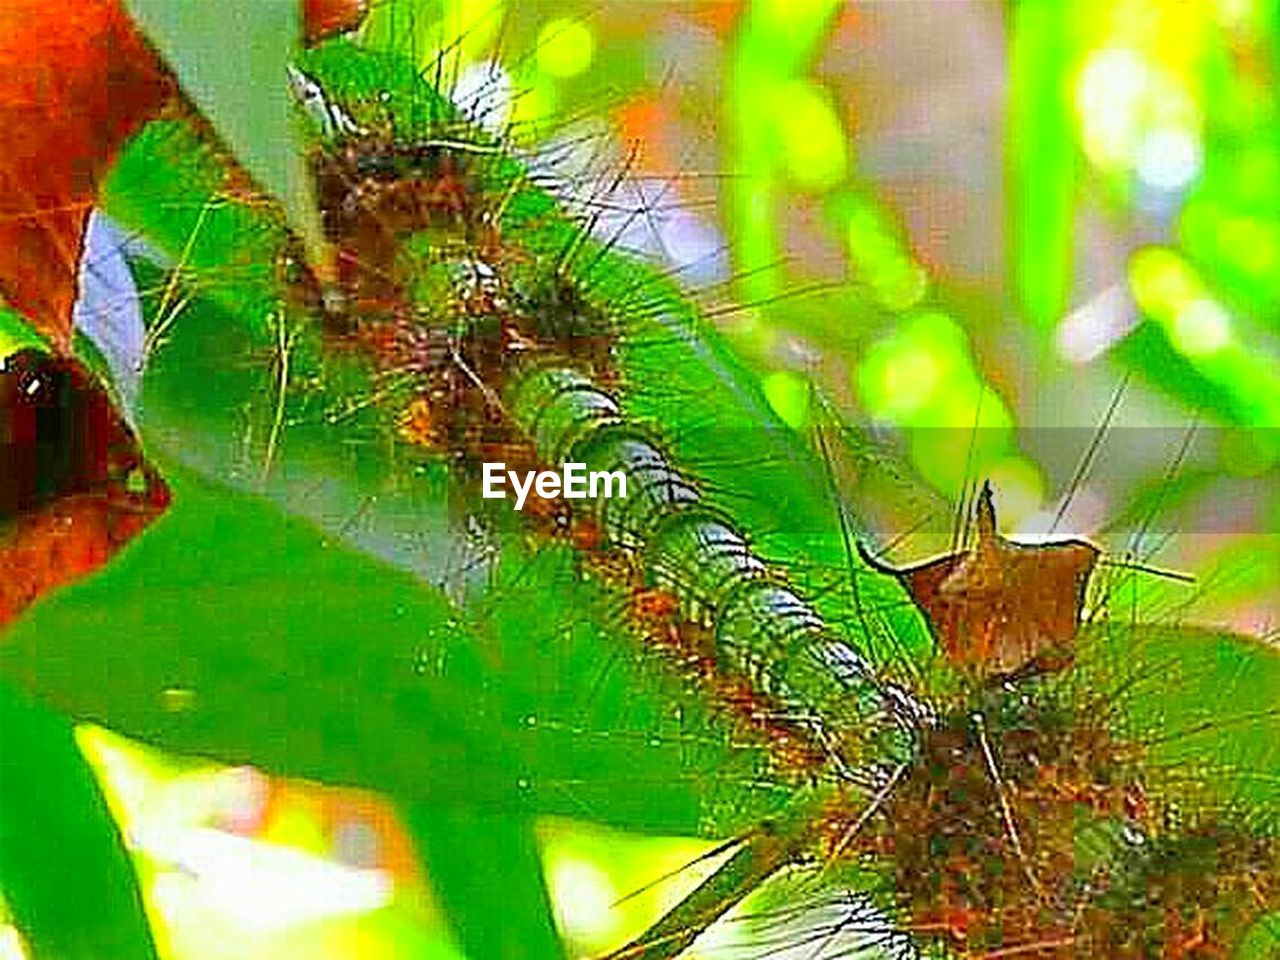 animal, animal themes, green color, animal wildlife, invertebrate, insect, close-up, leaf, animals in the wild, nature, plant part, no people, one animal, day, beauty in nature, plant, focus on foreground, selective focus, outdoors, animal wing